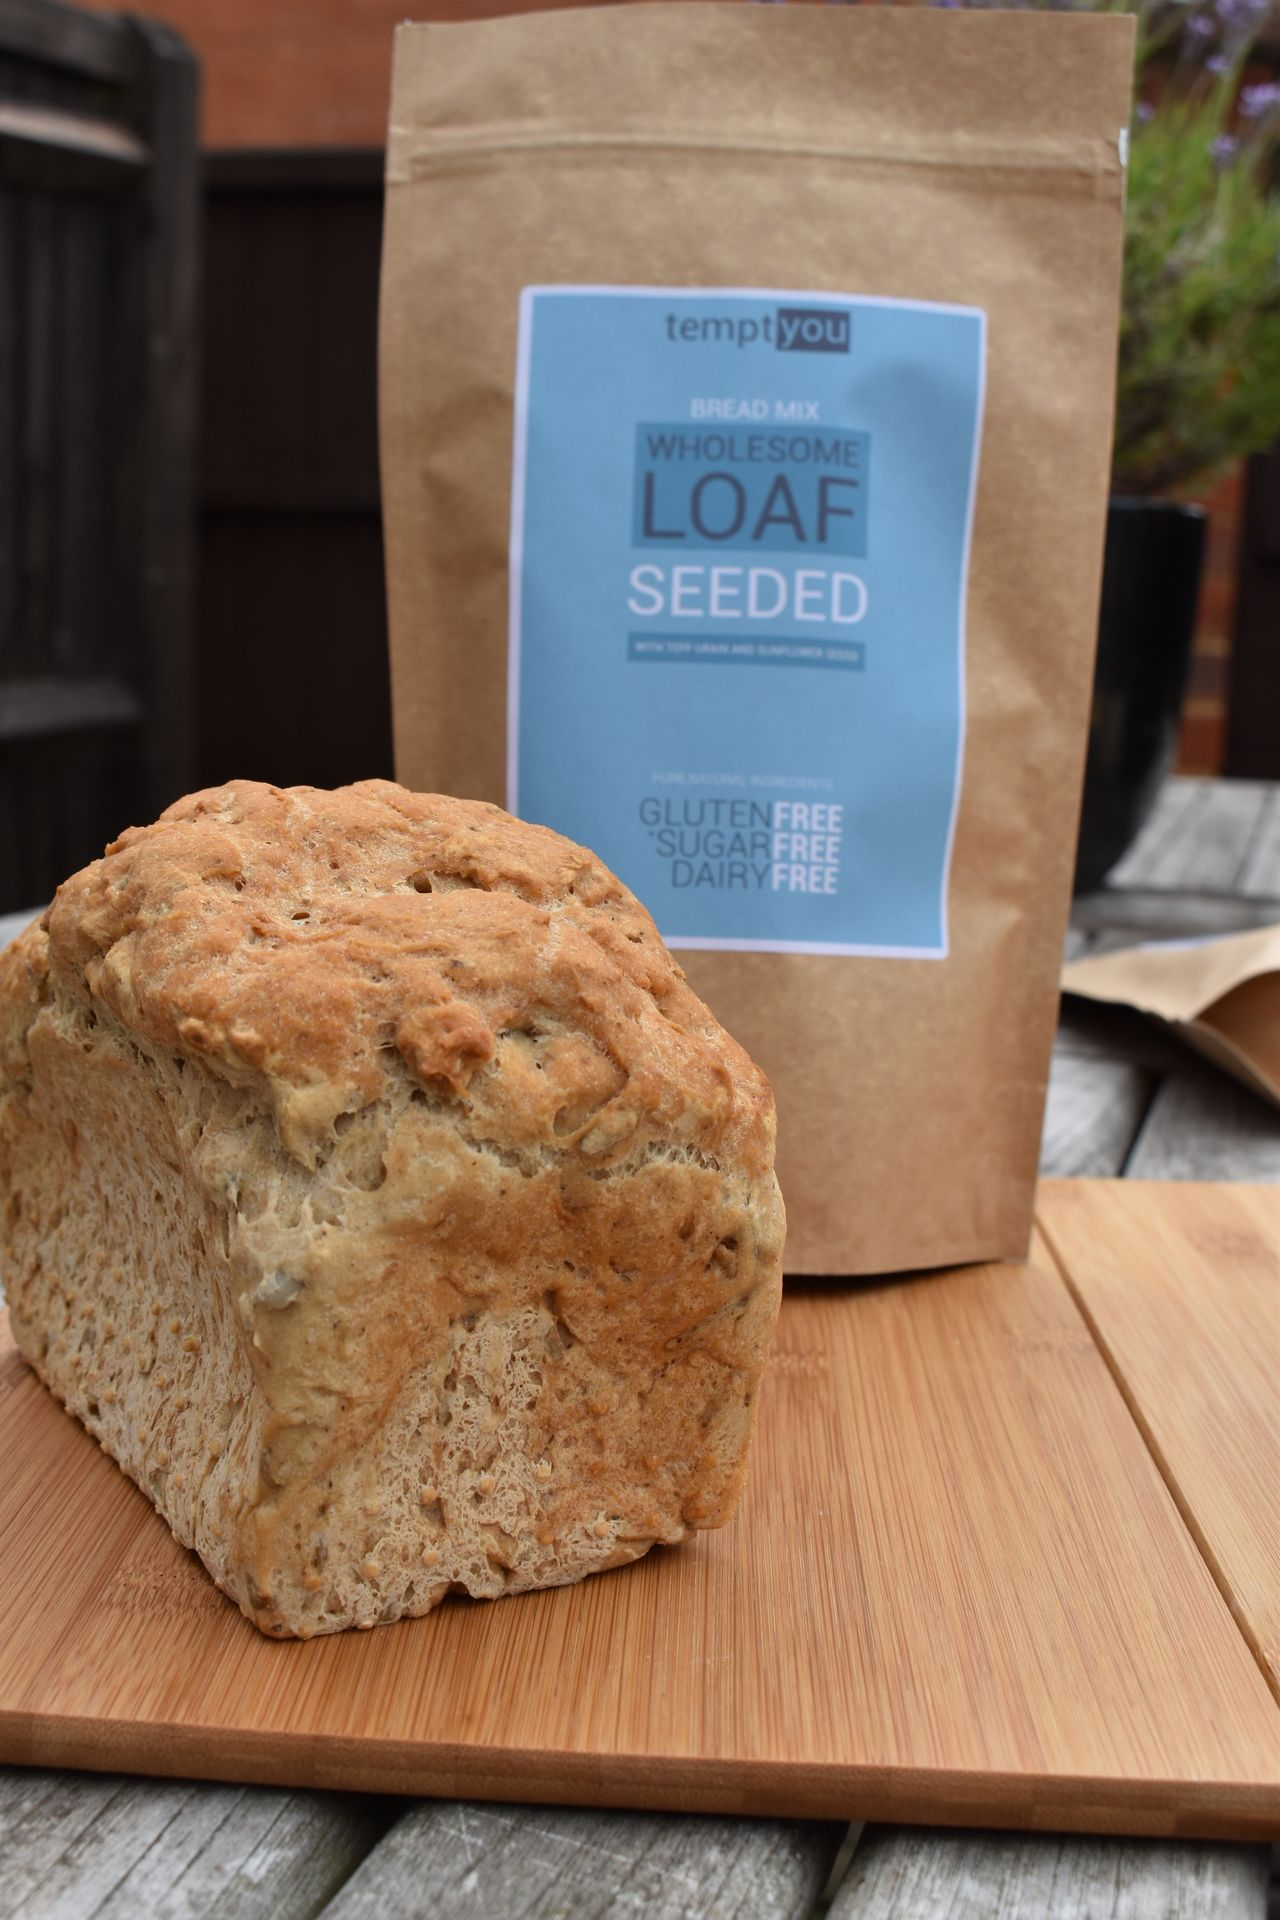 Gluten free dairy free sugar free seeded bread mix from